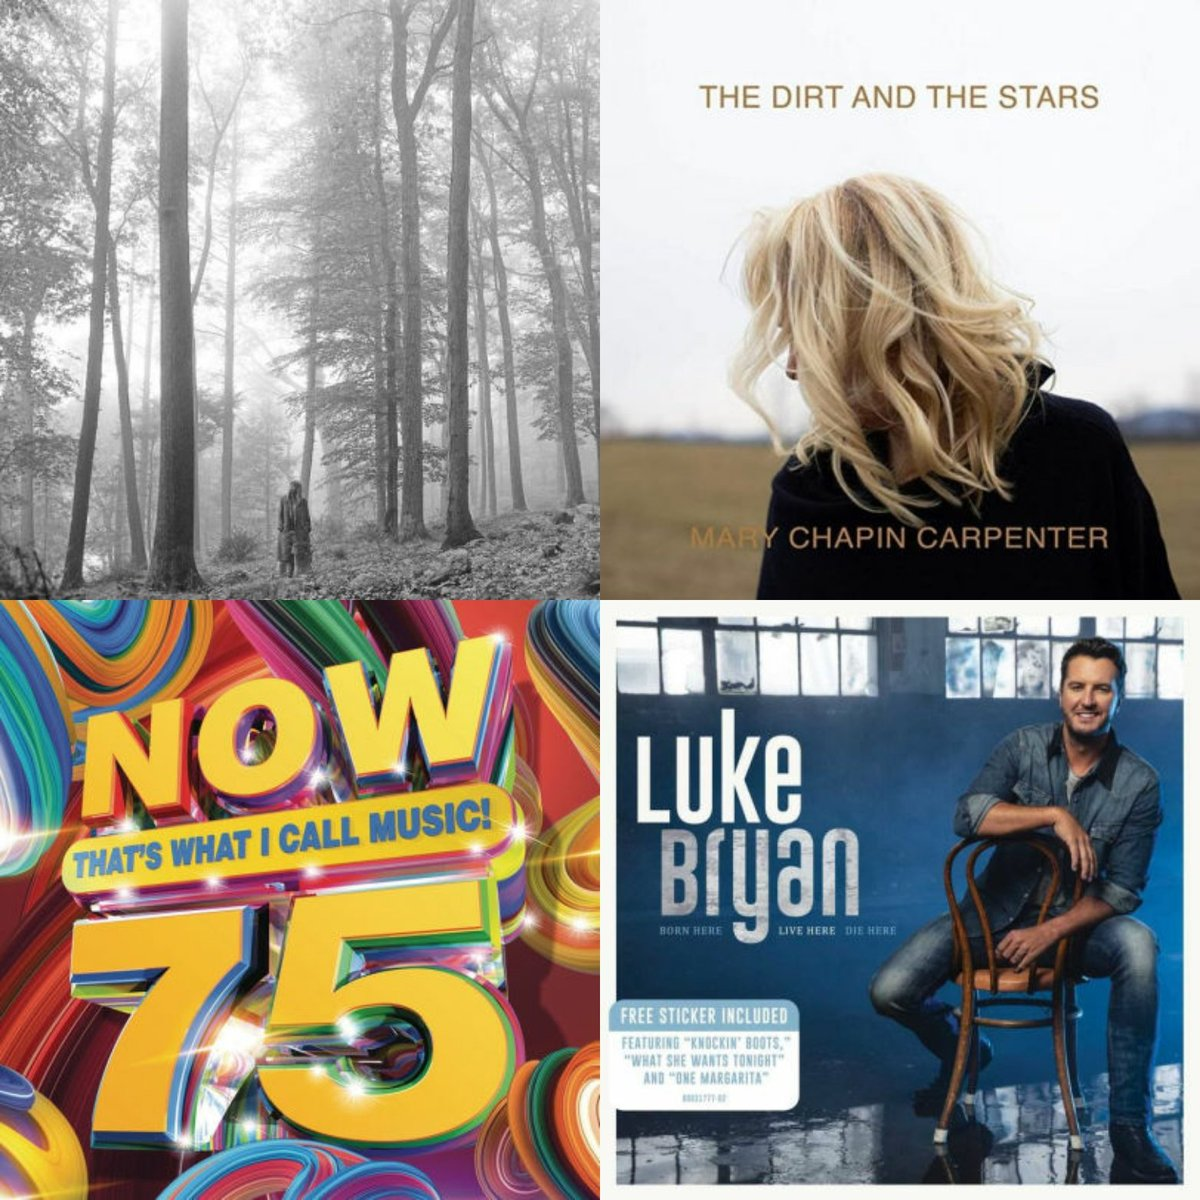 Here's what's new this #MusicFriday!   Featuring: Folklore (Taylor Swift) Now 75: That's What I Call Music Dirt and the Stars (Mary-Chapin Carpenter)  Born Here Live Here Die Here (Luke Bryan) #bnmidwest #NewRelease ##music #taylorswift #country #marychapincarpenter #lukebryan https://t.co/Z7GU3l6kkV